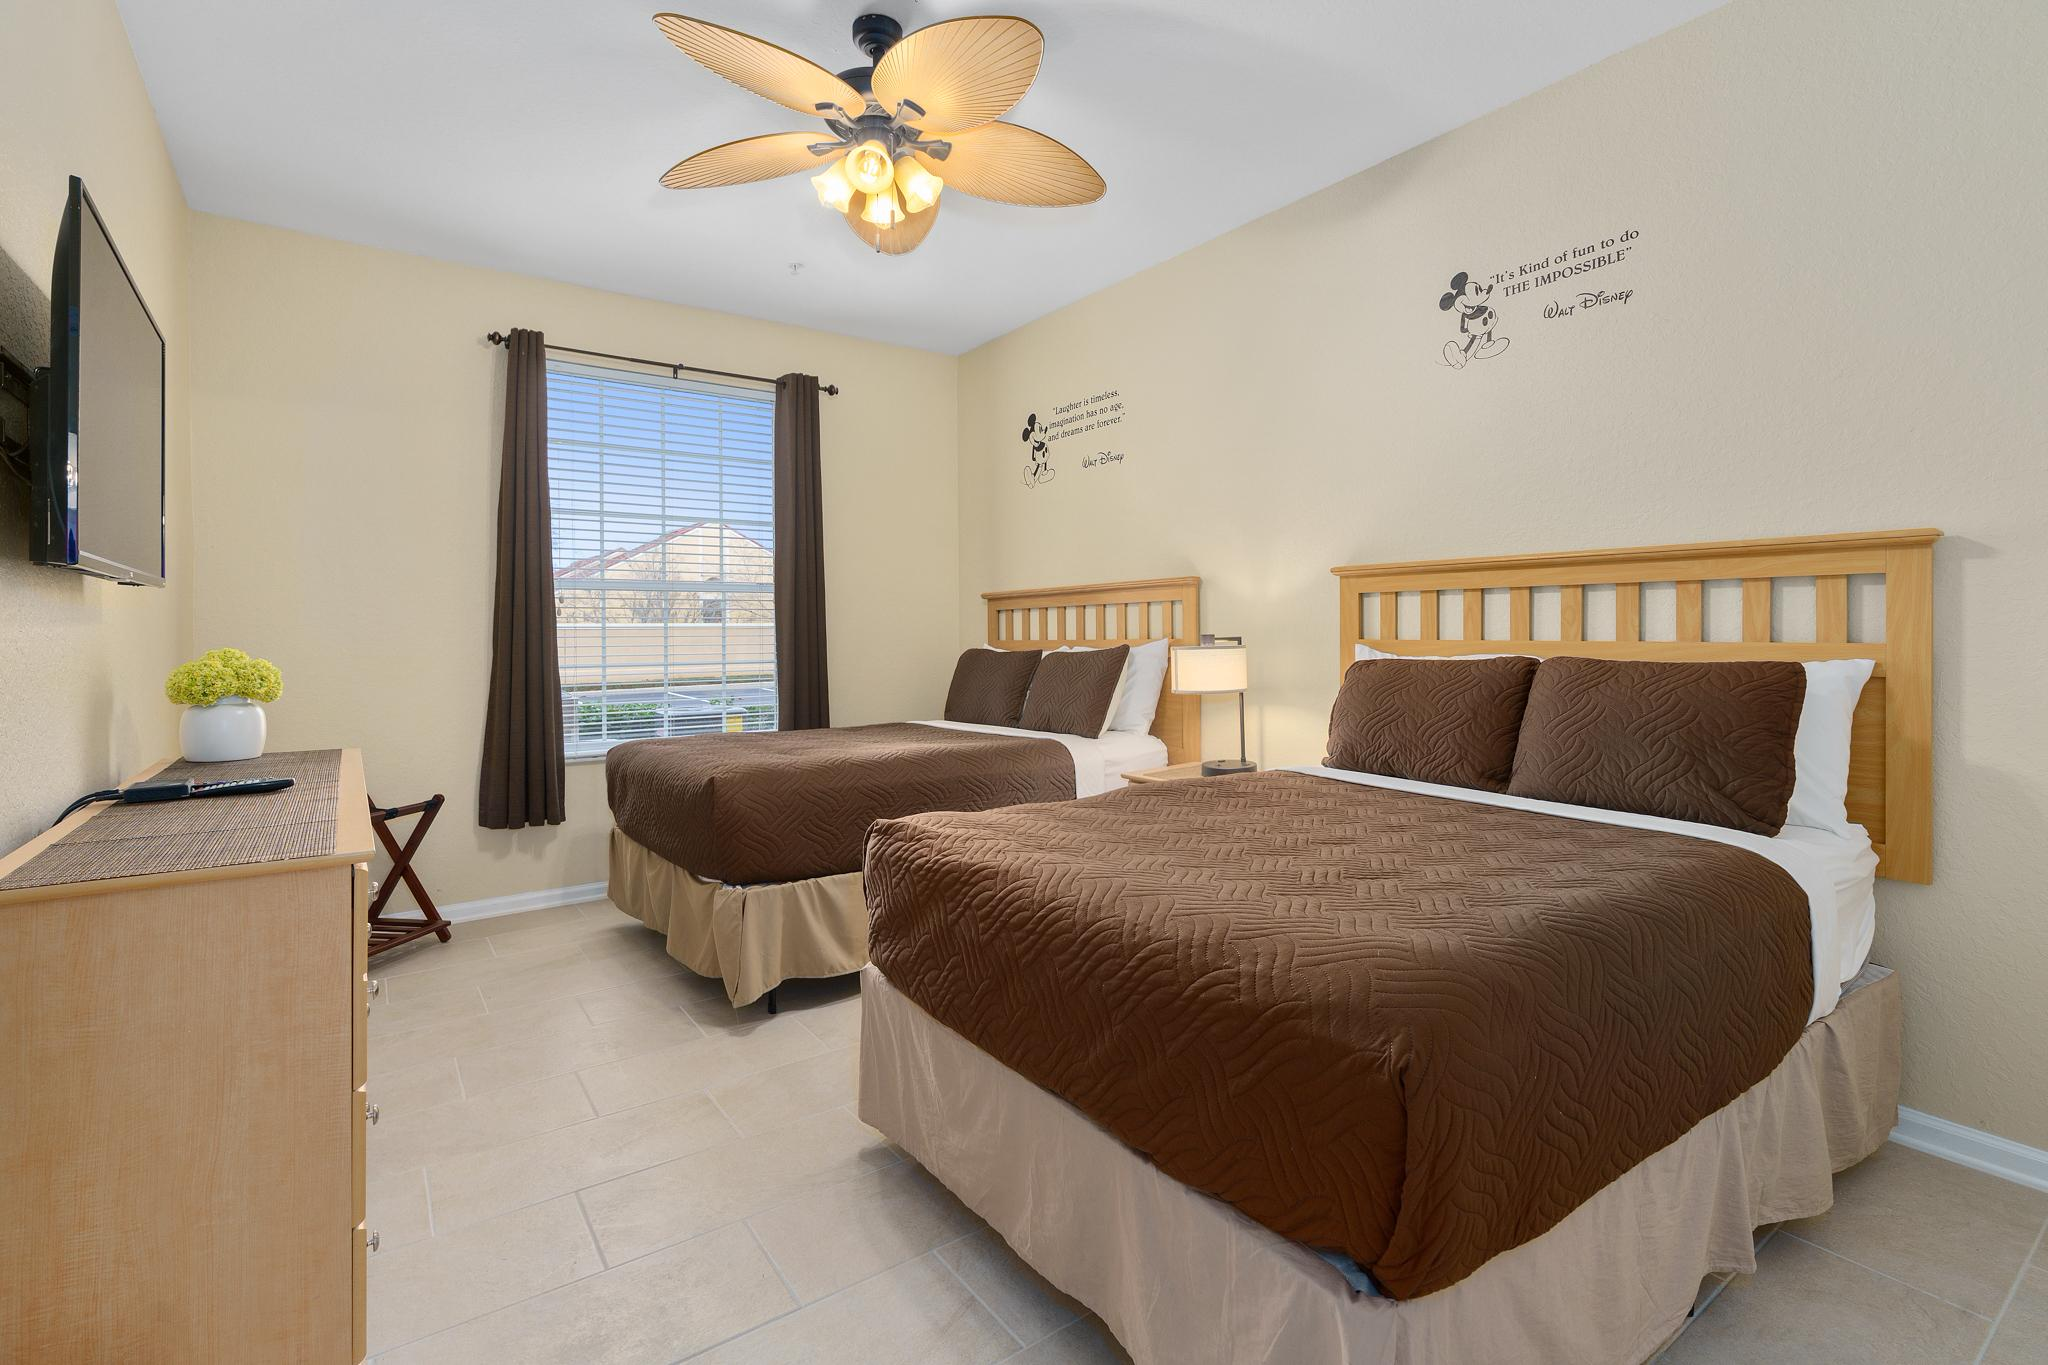 Second bedroom - 2 full-size beds